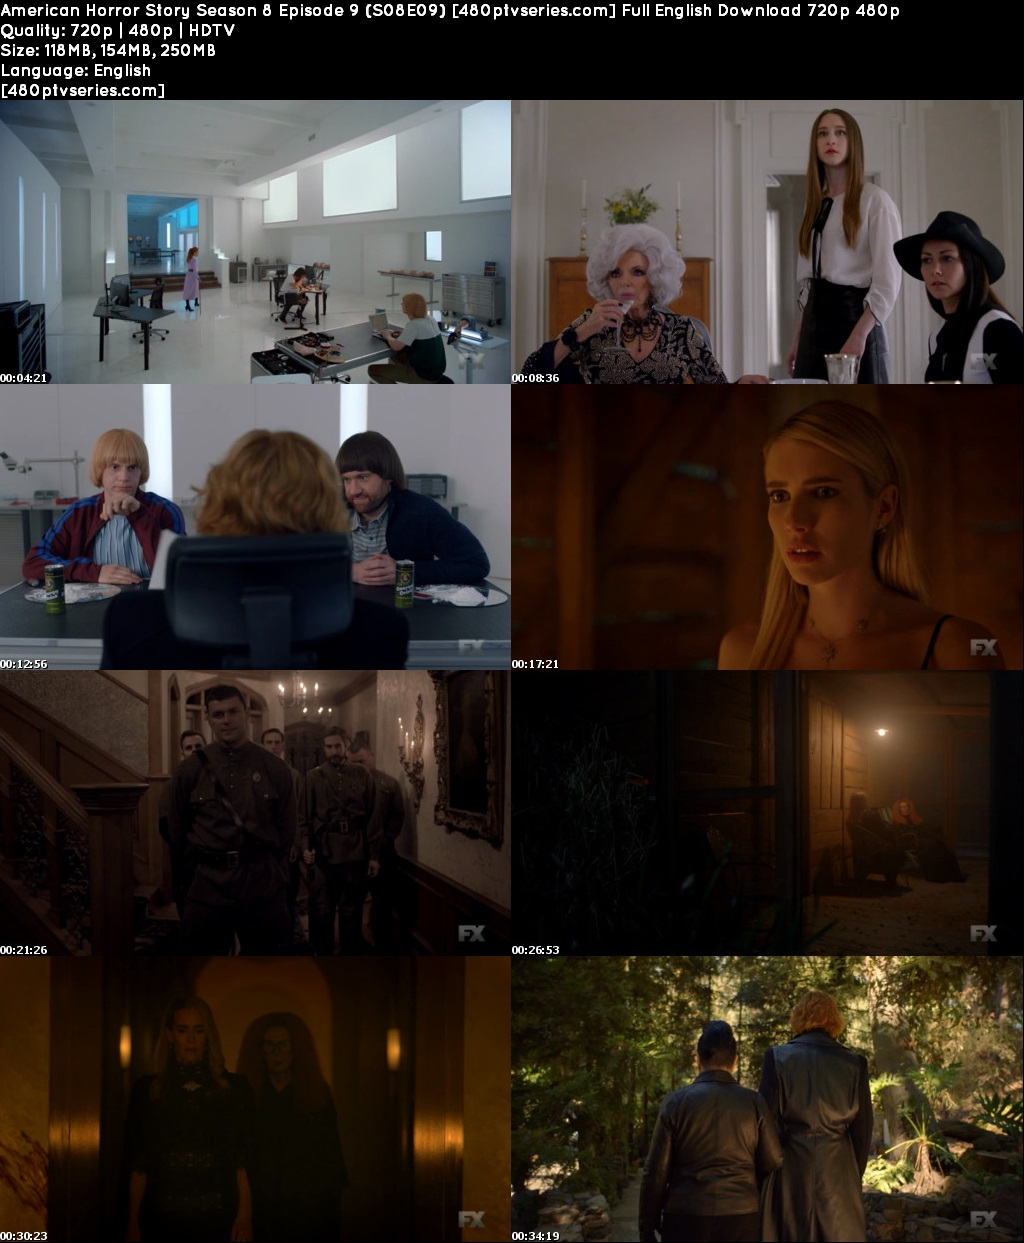 American Horror Story Season 8 Episode 9 (S08E09) Full English Download 720p 480p